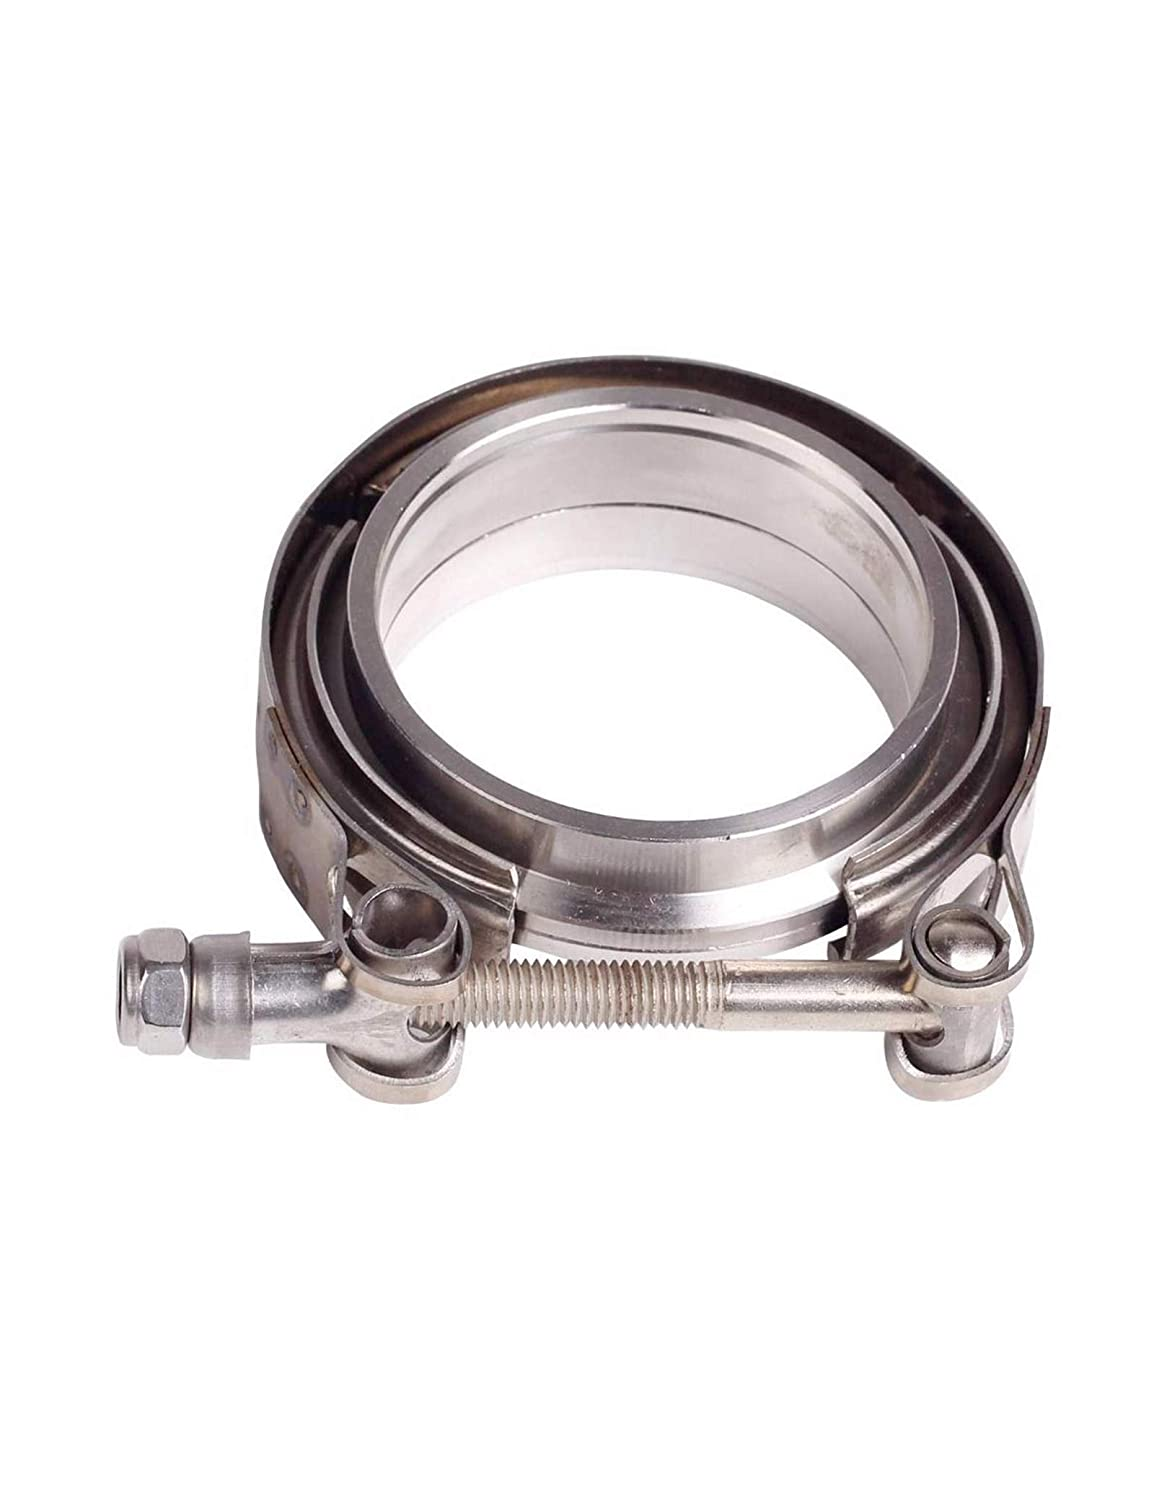 V-Band Flange Kit Downpipes,Exhaust Systems 3.5in 89mm SS Vband 3.5 Inch V Band Clamp with Stainless Steel Flanges for Turbo